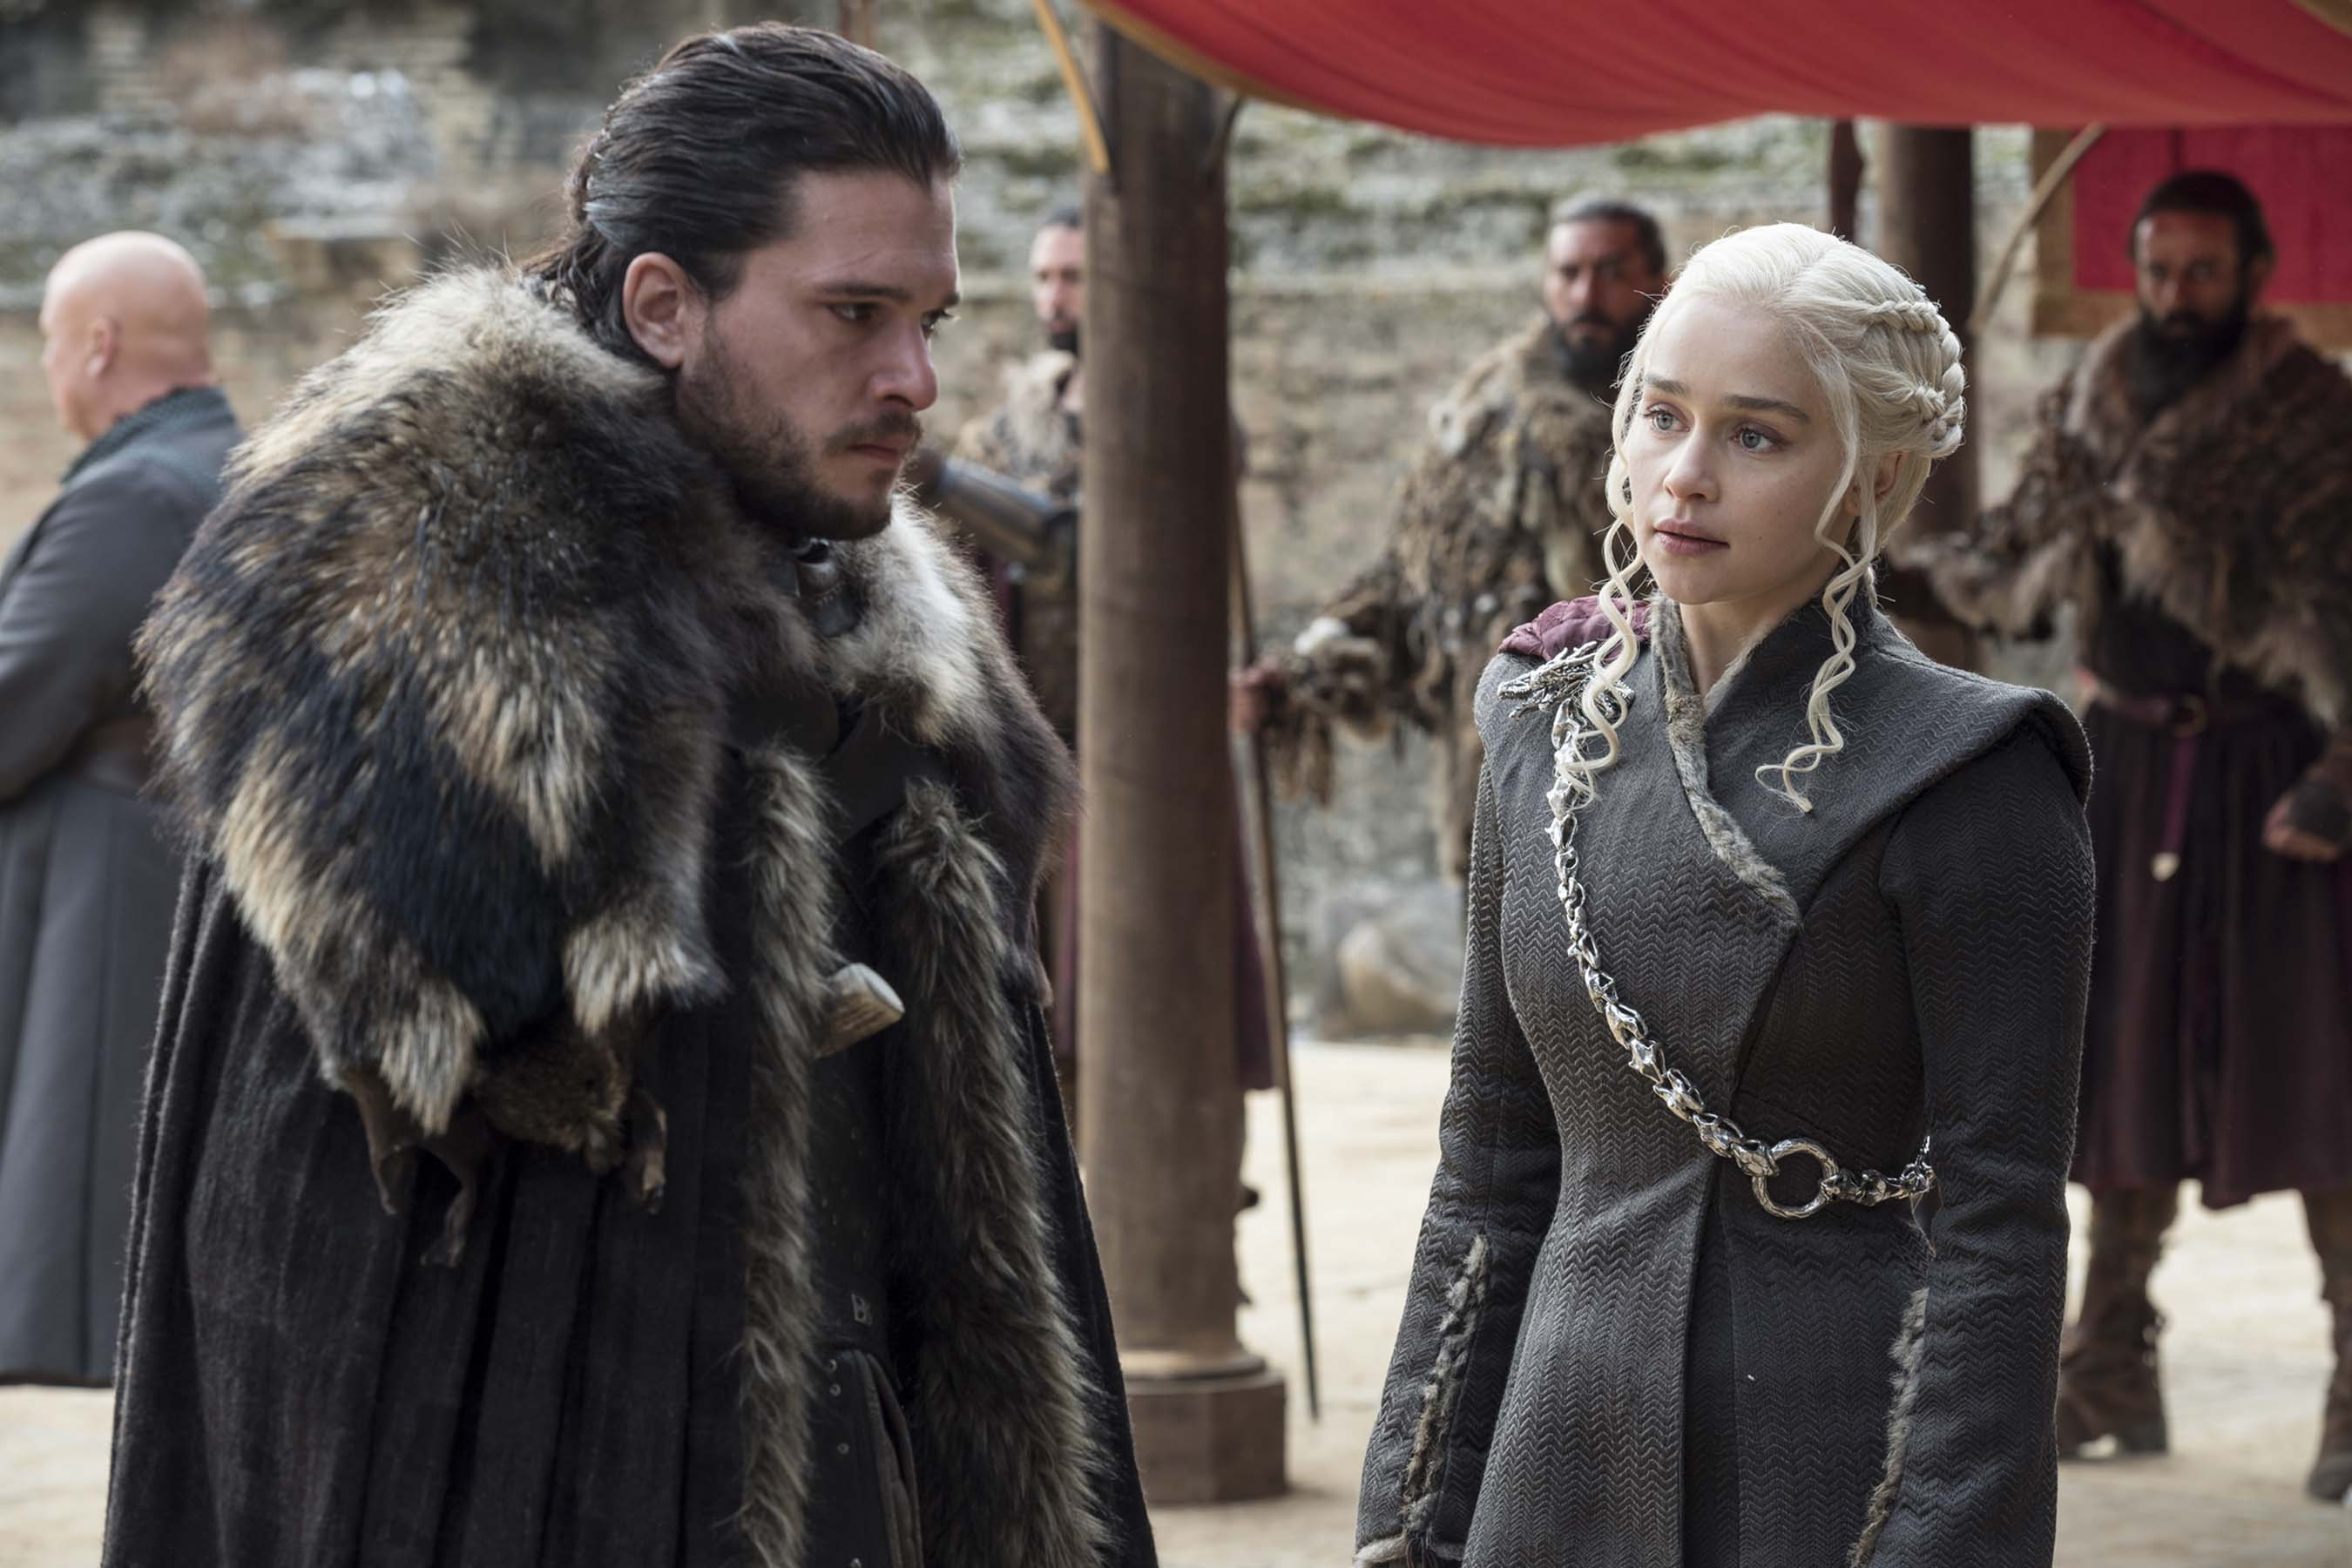 Game of Thrones reveals new season 8 teaser video